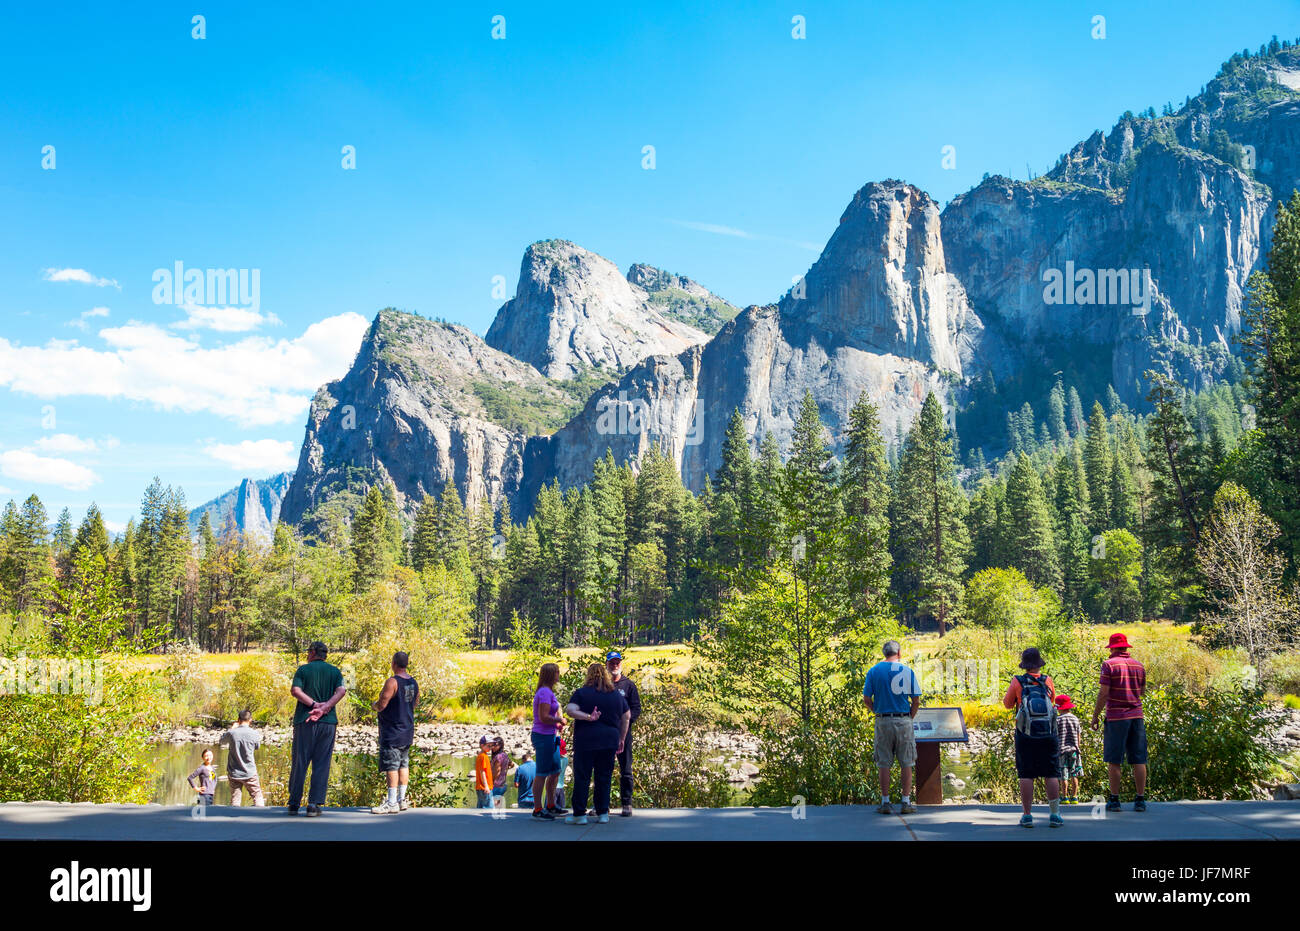 Yosemite Park, USA, Tourists looking at  the Cathedral Spires mountains - Stock Image